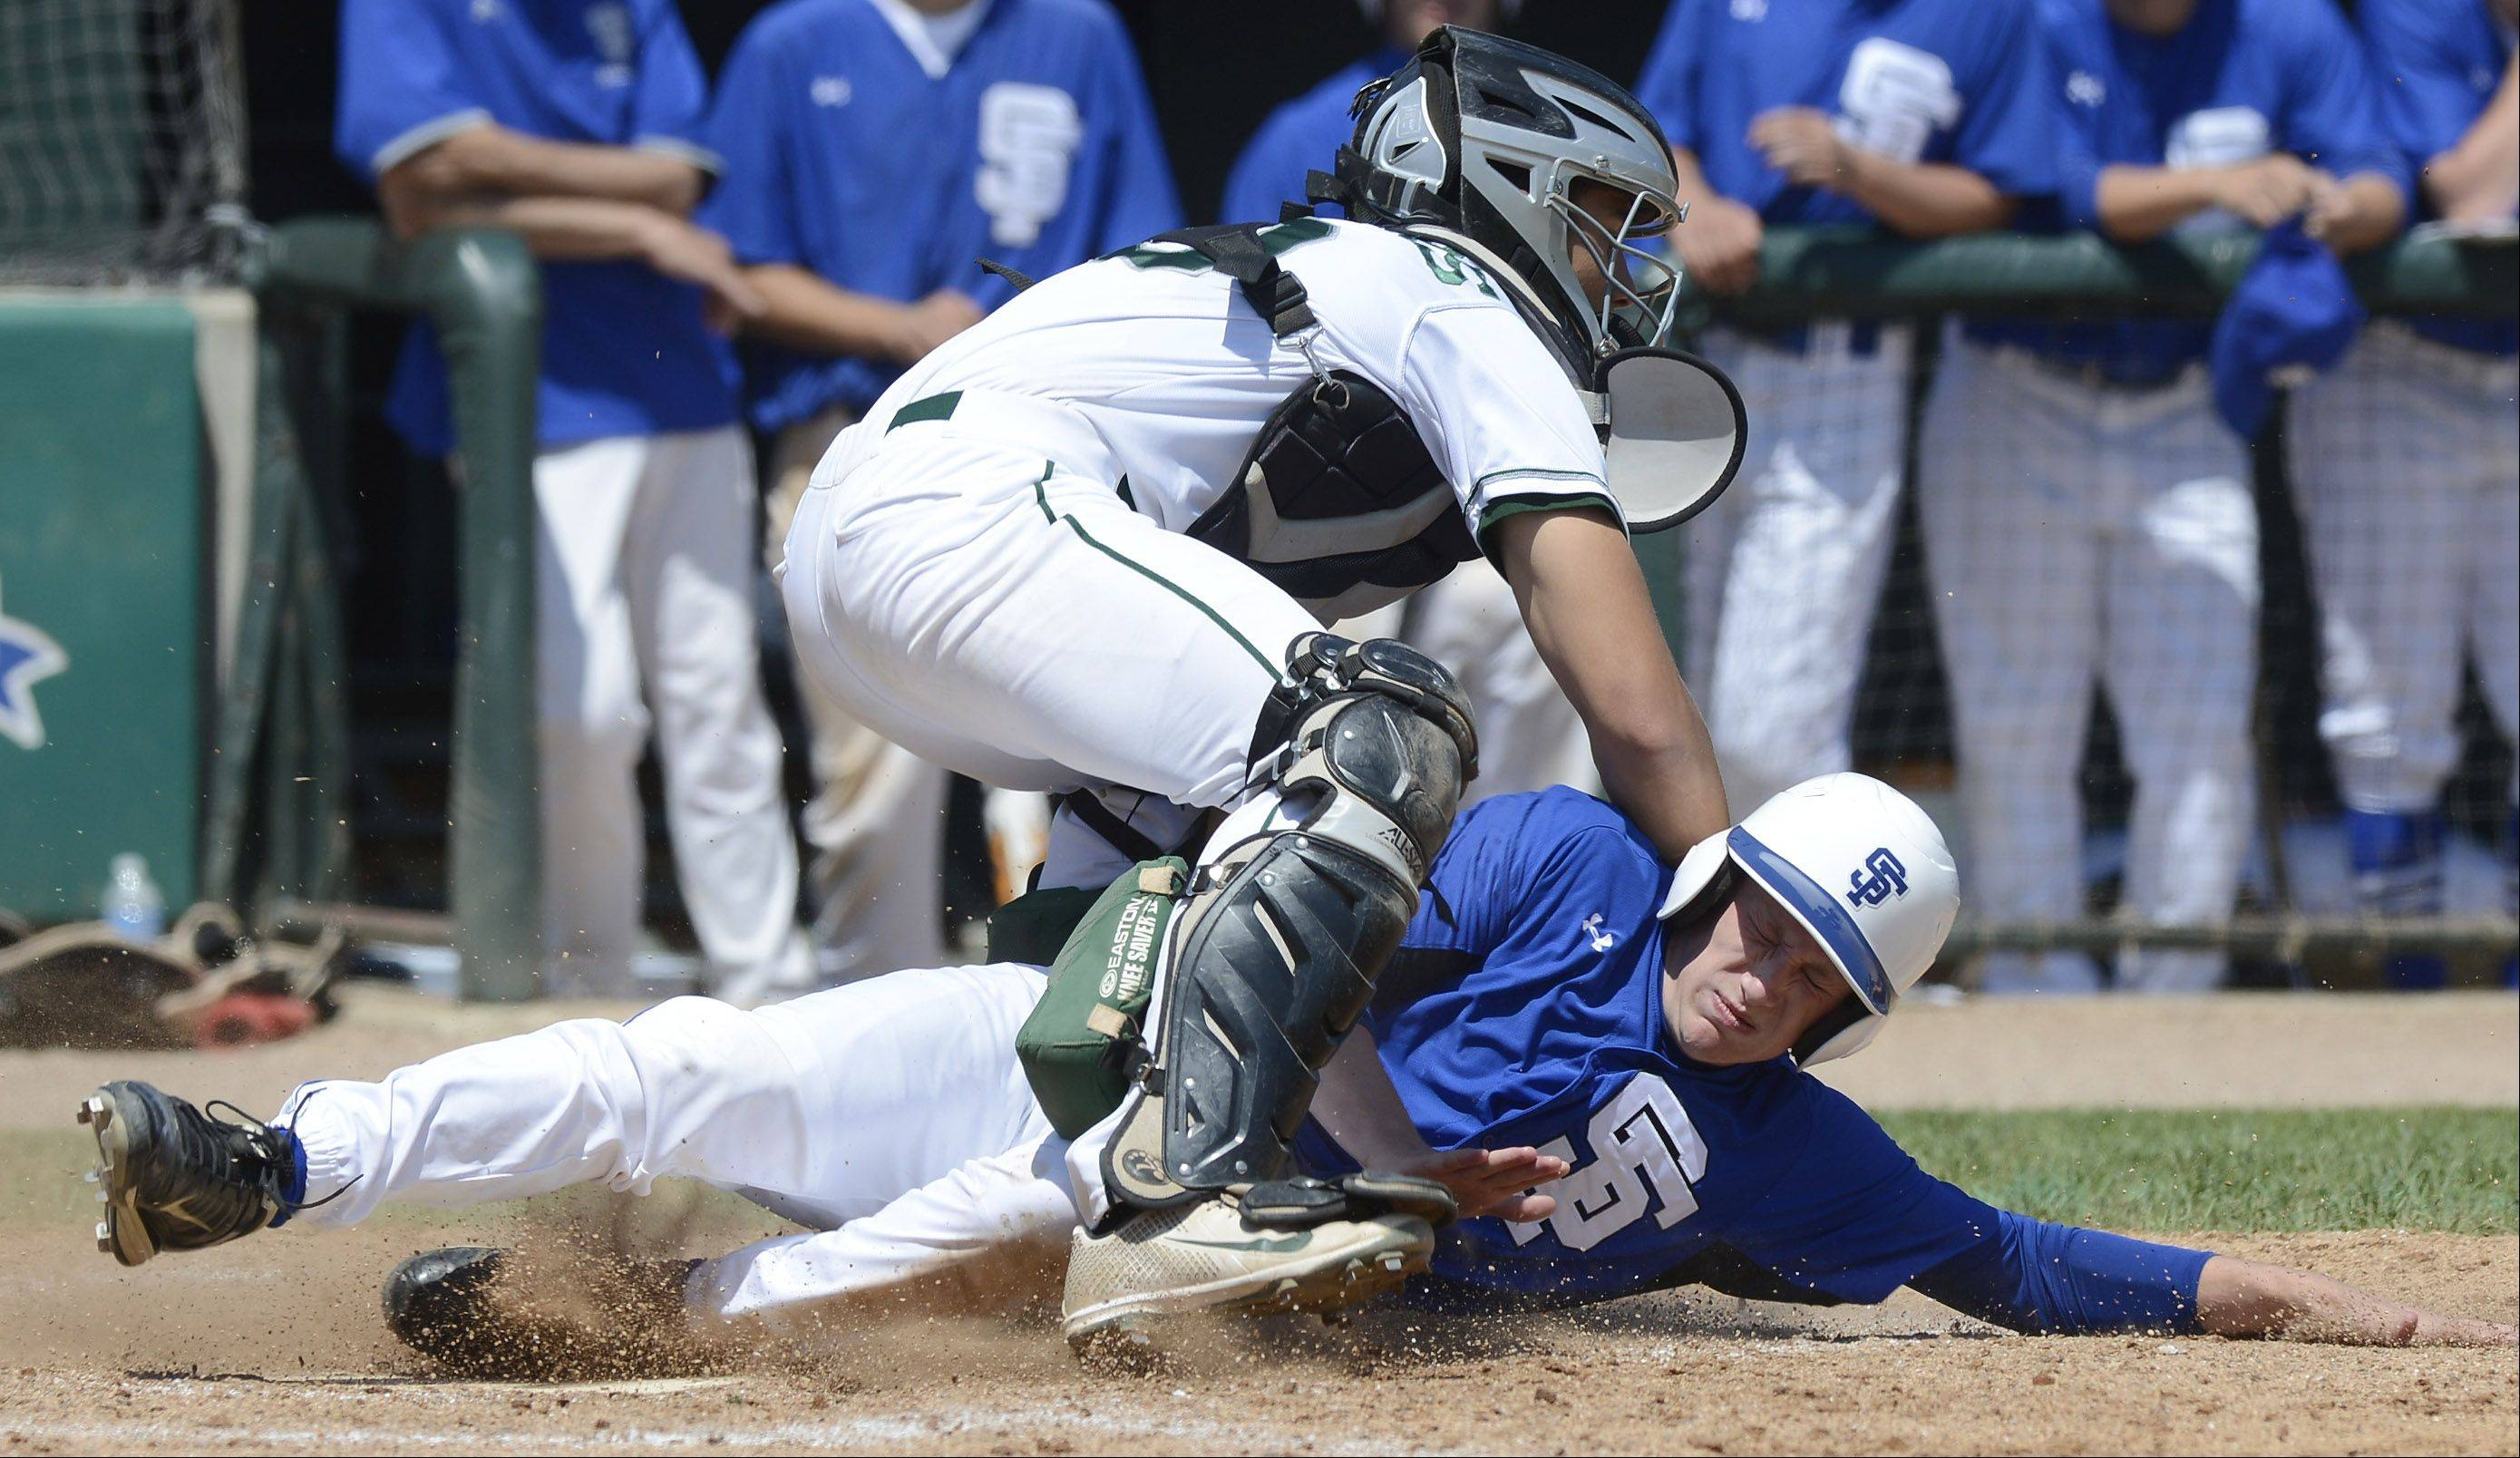 Jake Radel of St. Francis gets tagged out at the plate by Grayslake Central catcher Freddie Landers during the Class 3A state baseball semifinal at Silver Cross Field in Joliet on Friday.